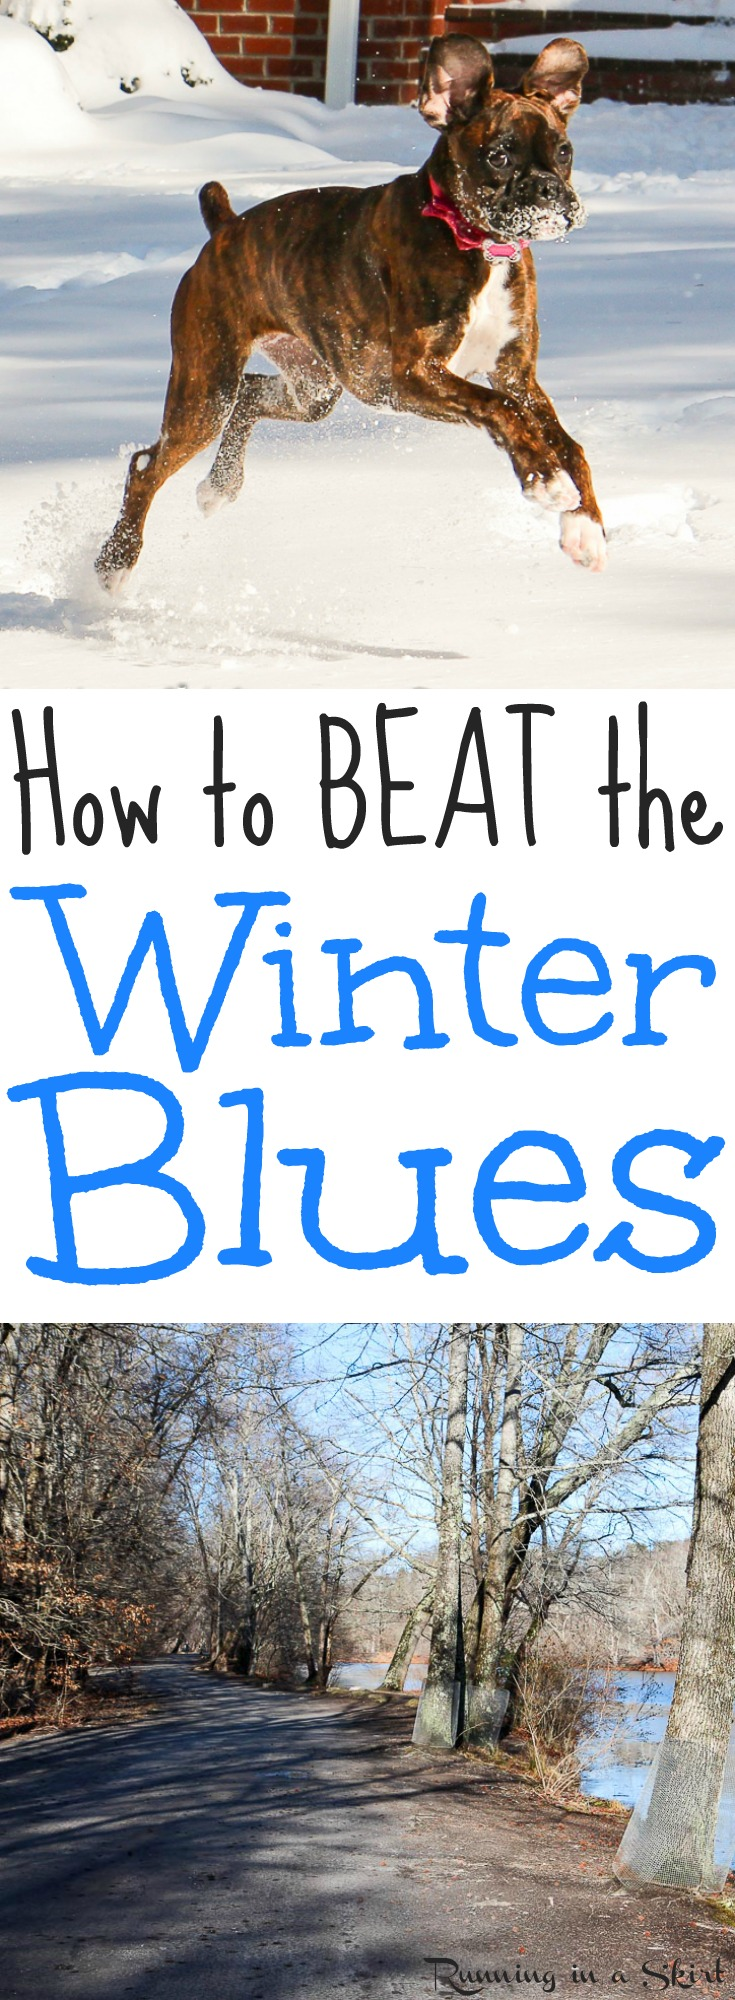 5 Self Care Hacks to Beat the Winter Blues. Includes tips to stay healthy and happy in the cold season and winter health tips for life! / Running in a Skirt  via @juliewunder